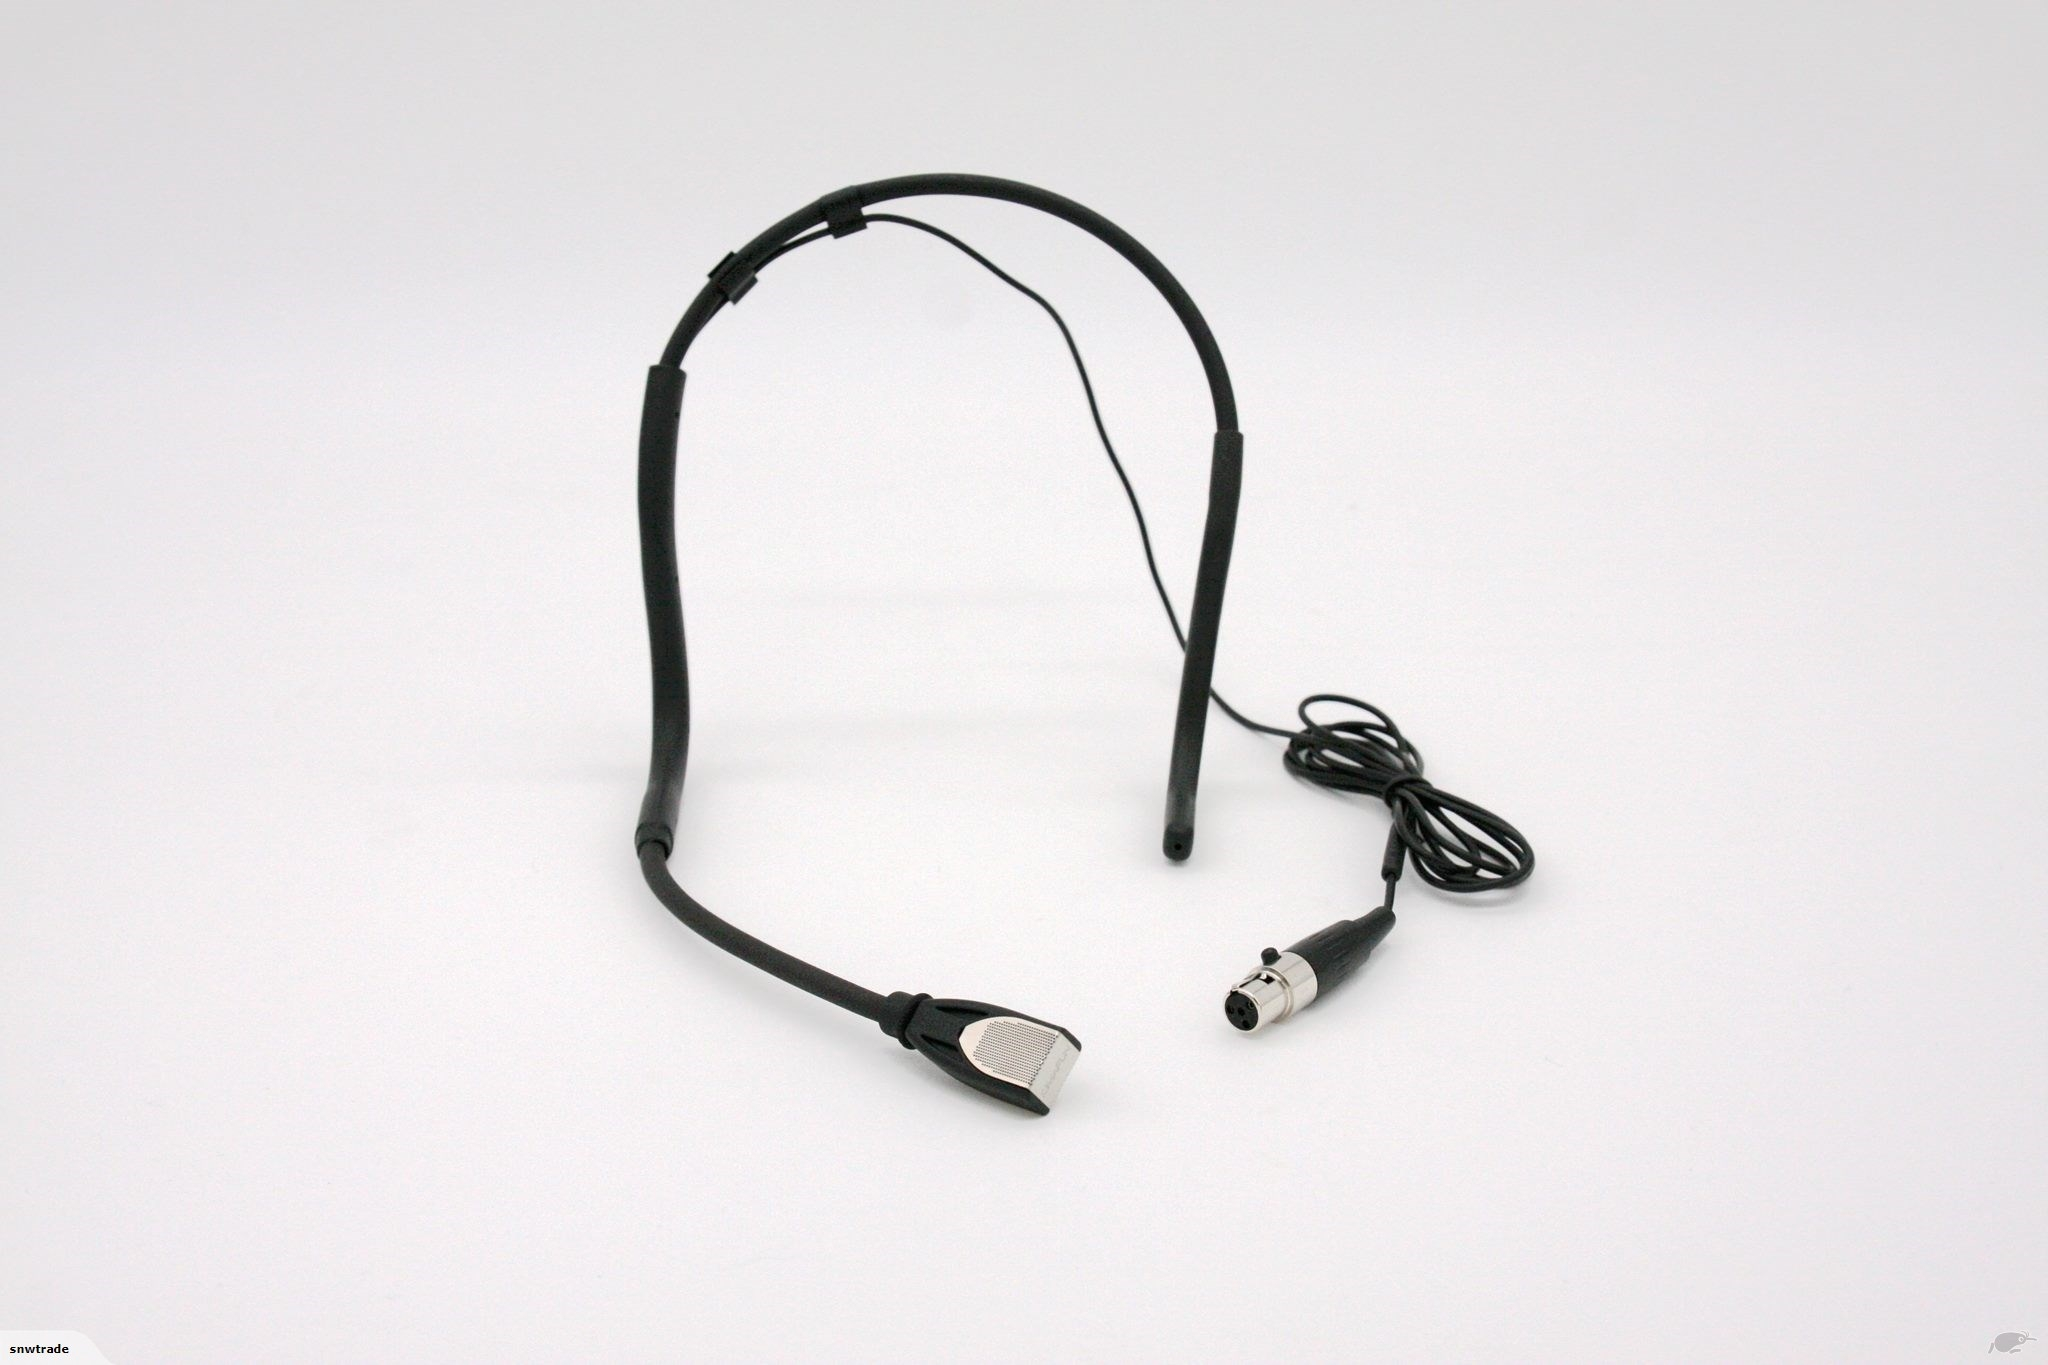 Snw Trade Home Mini 4 Pin Xlr Waterproof Headsets Microphone For Co Wiring Download Original Image